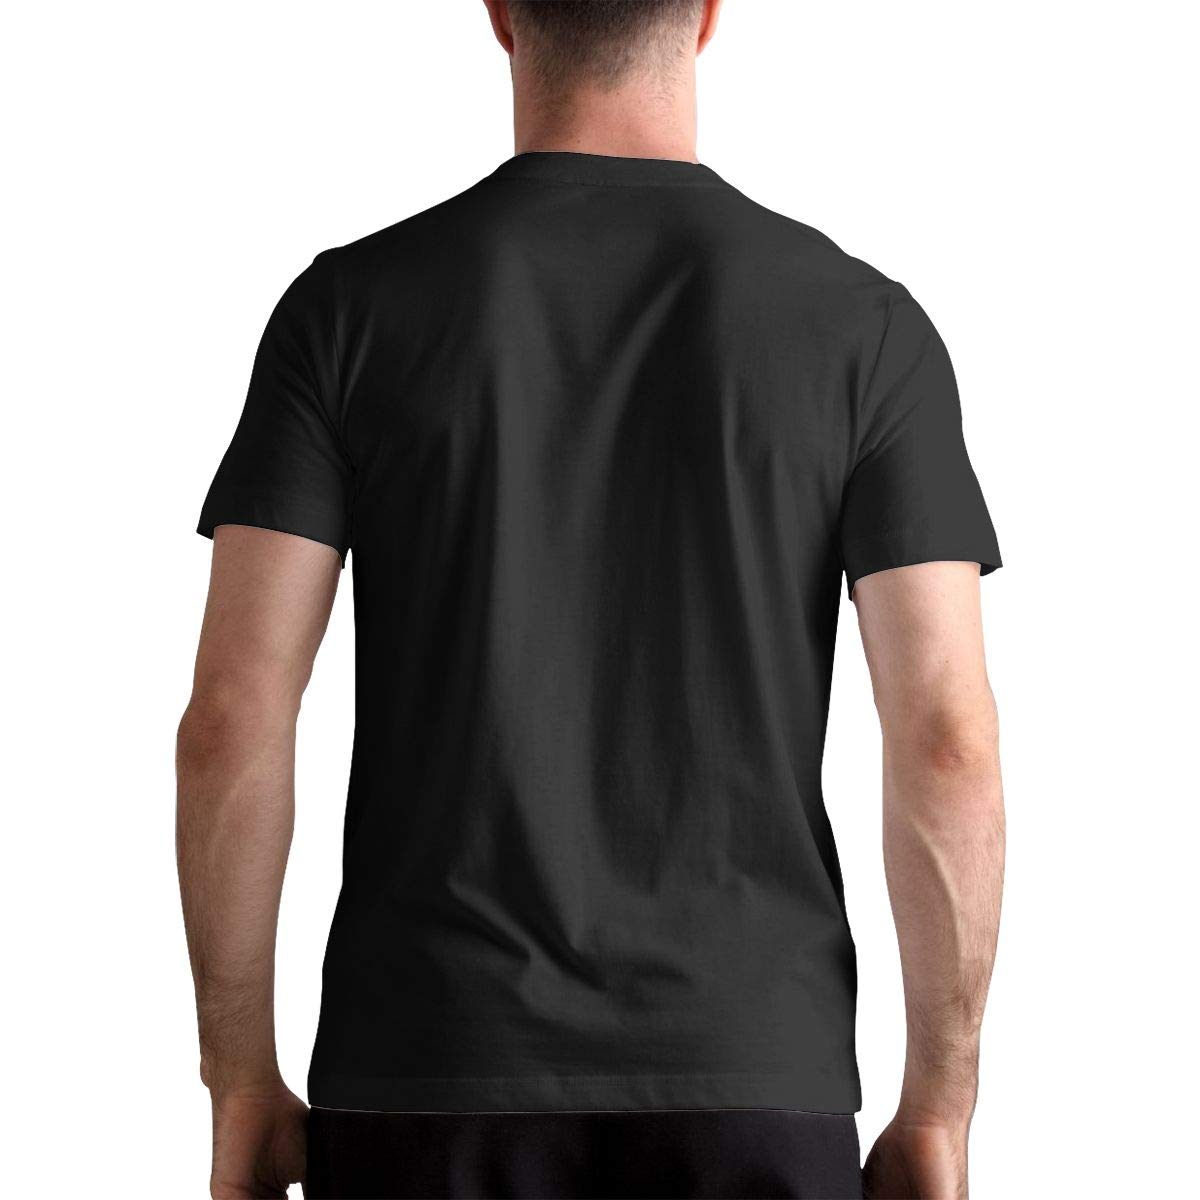 Sam Hunt-Take Your Time Mens Basic Short Sleeve Music Band Shirts Shirt Black